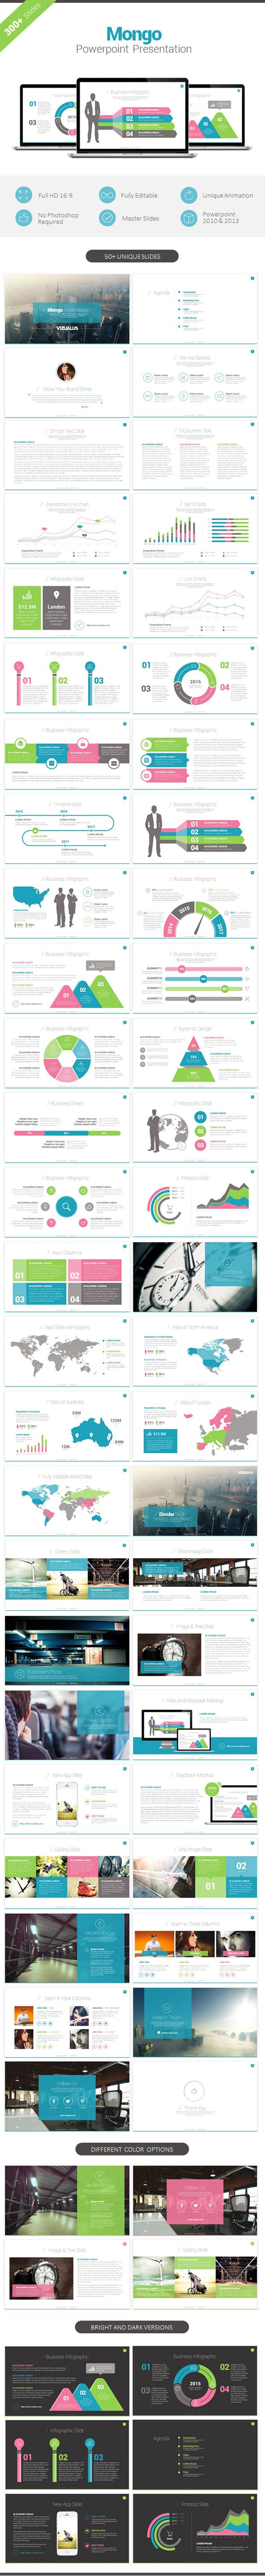 Mongo Powerpoint Template (PowerPoint Templates)